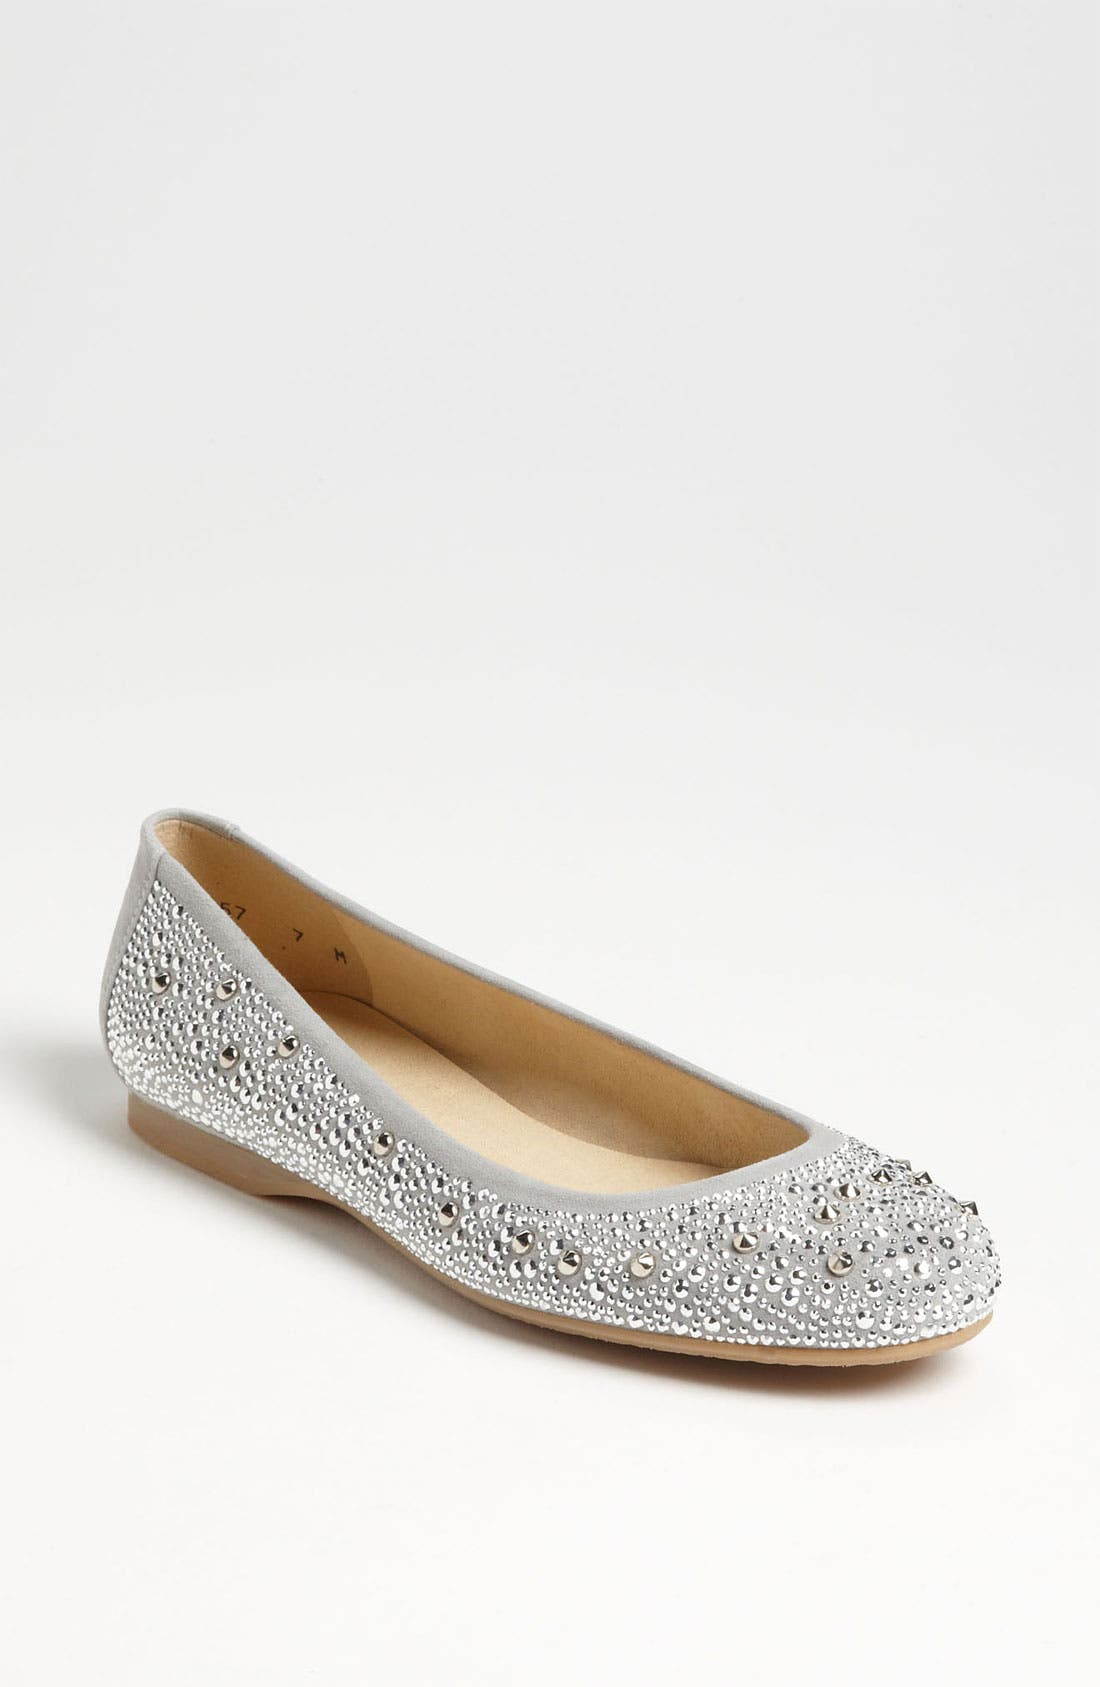 Alternate Image 1 Selected - Stuart Weitzman 'Nubeads' Flat